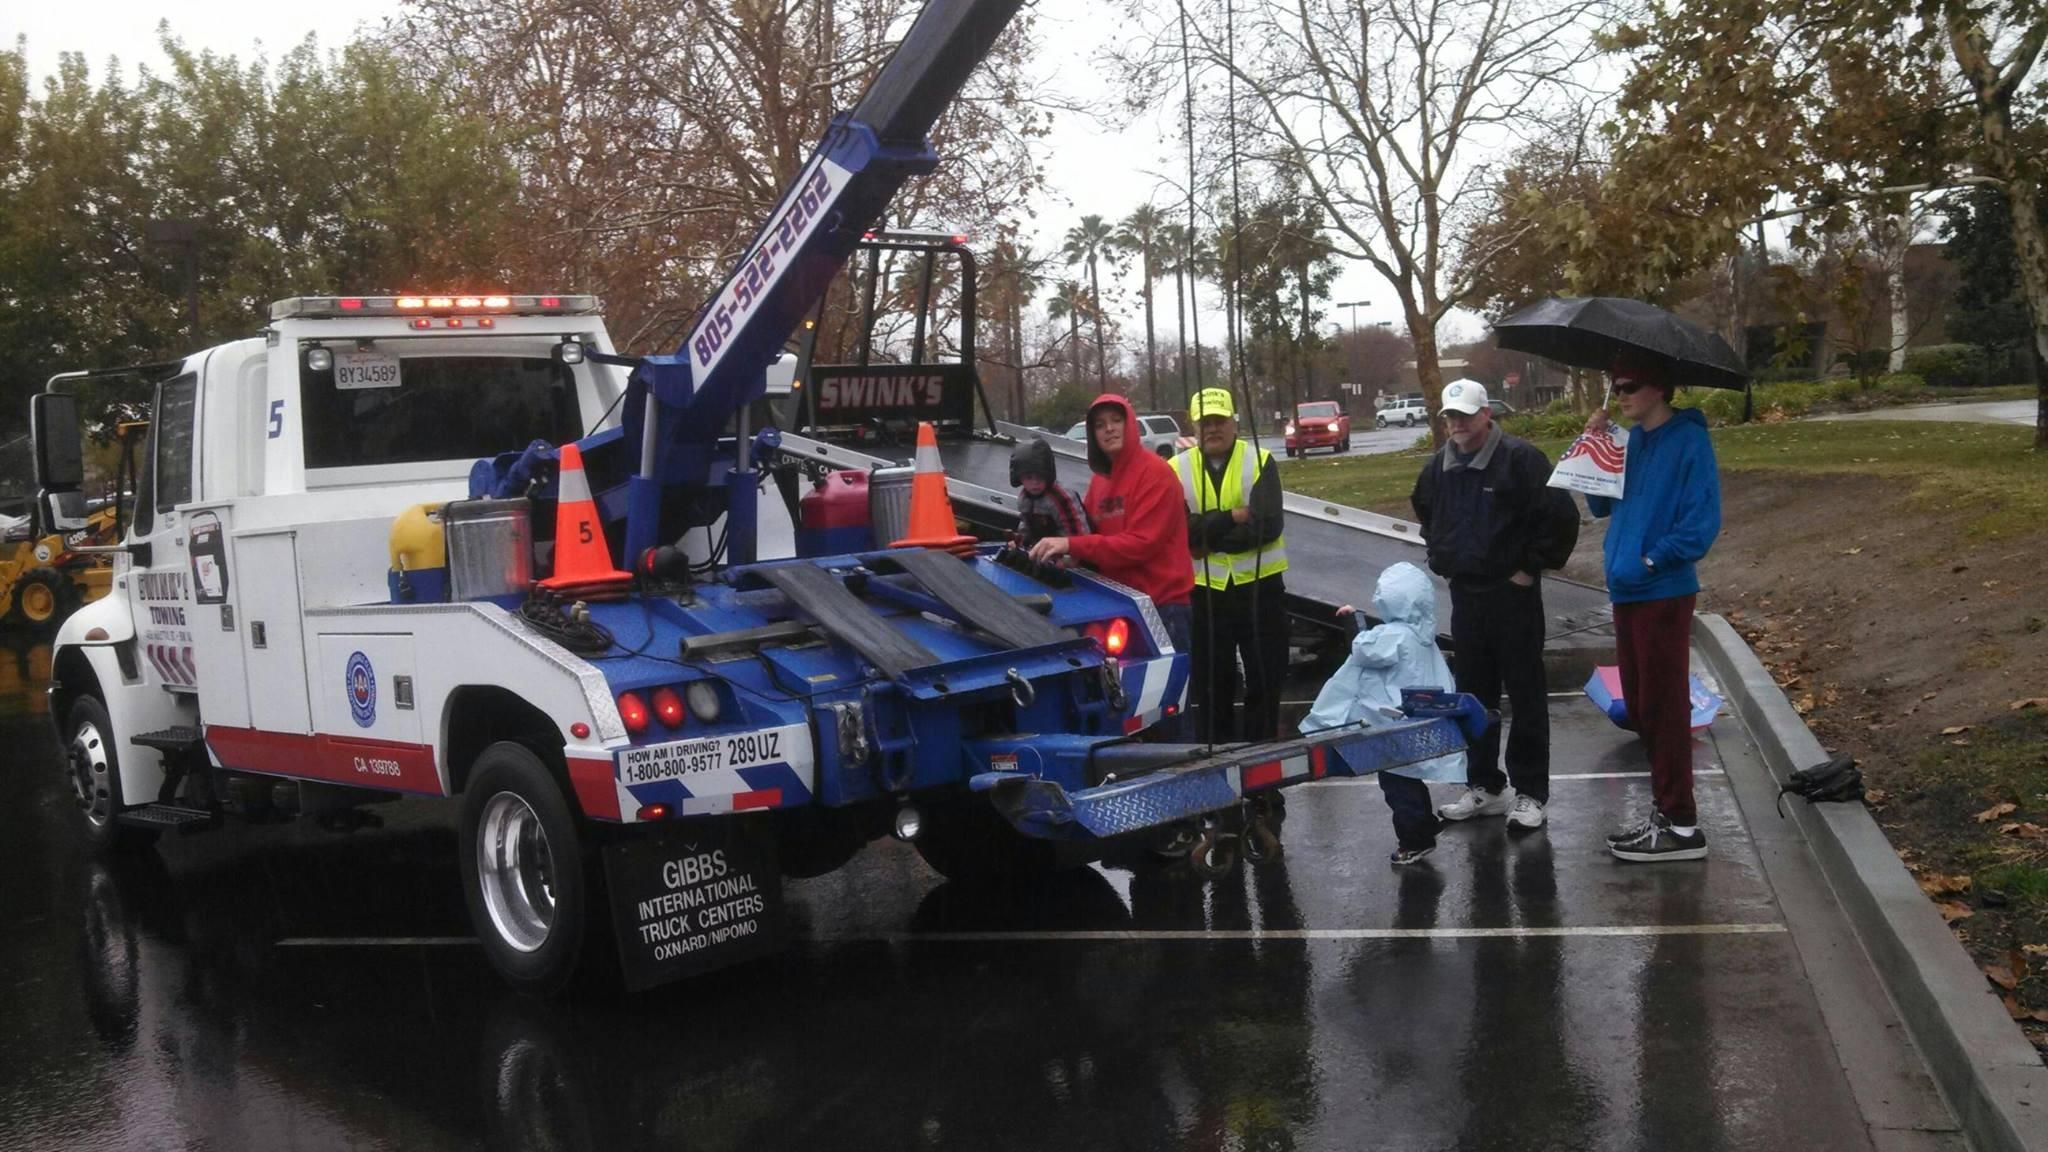 Swinks Simi Valley Towing image 4